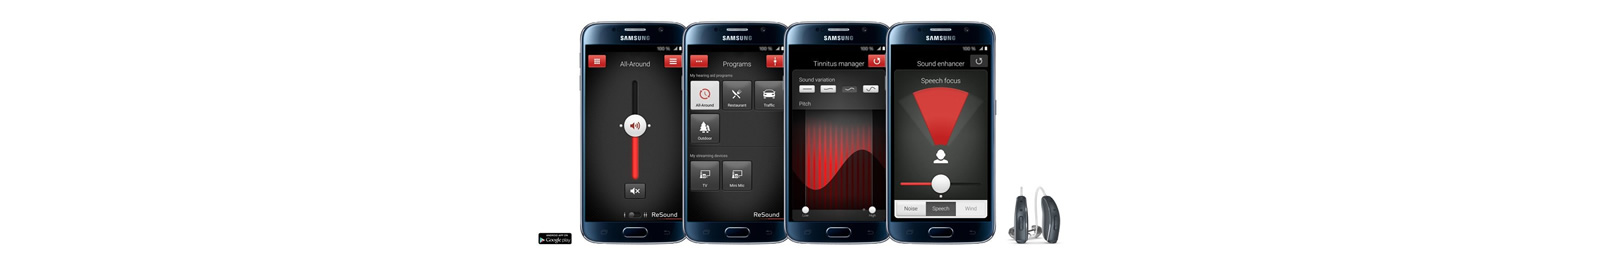 linx2-RS_Samsung_Galaxy_S6_Smart_app-3_Line-Up